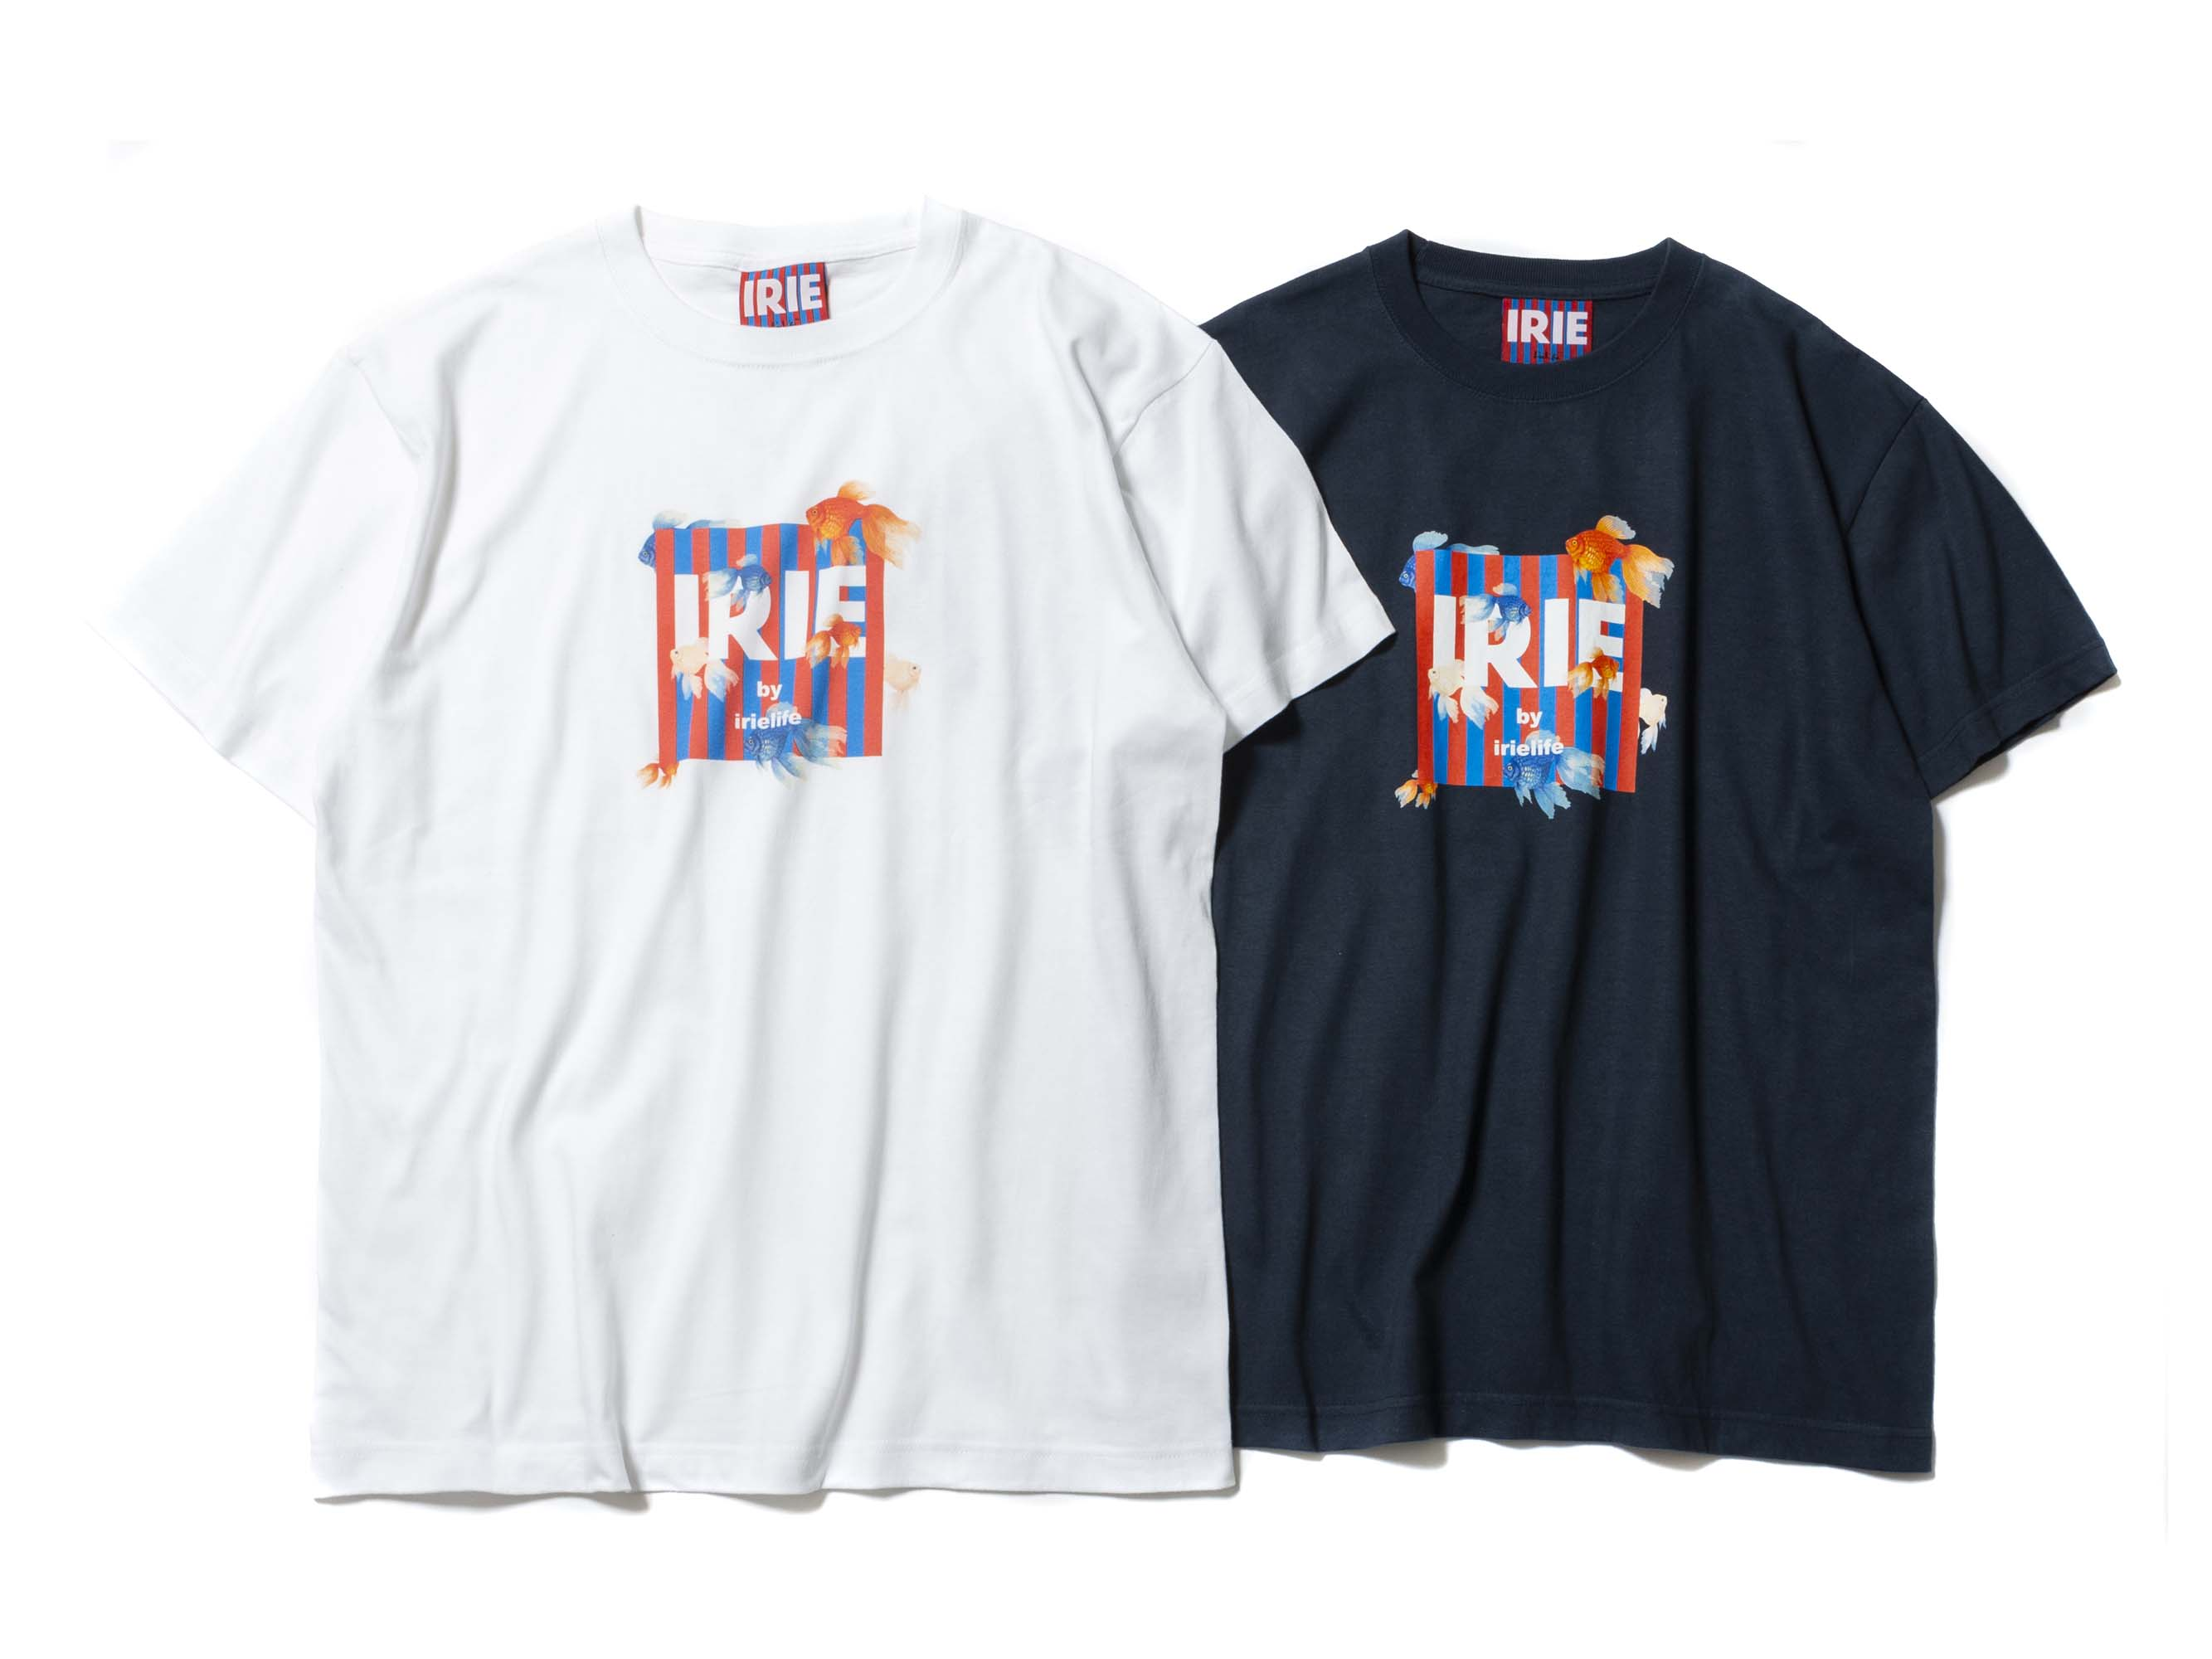 GOLDFISH LOGO TEE - IRIE by irielife